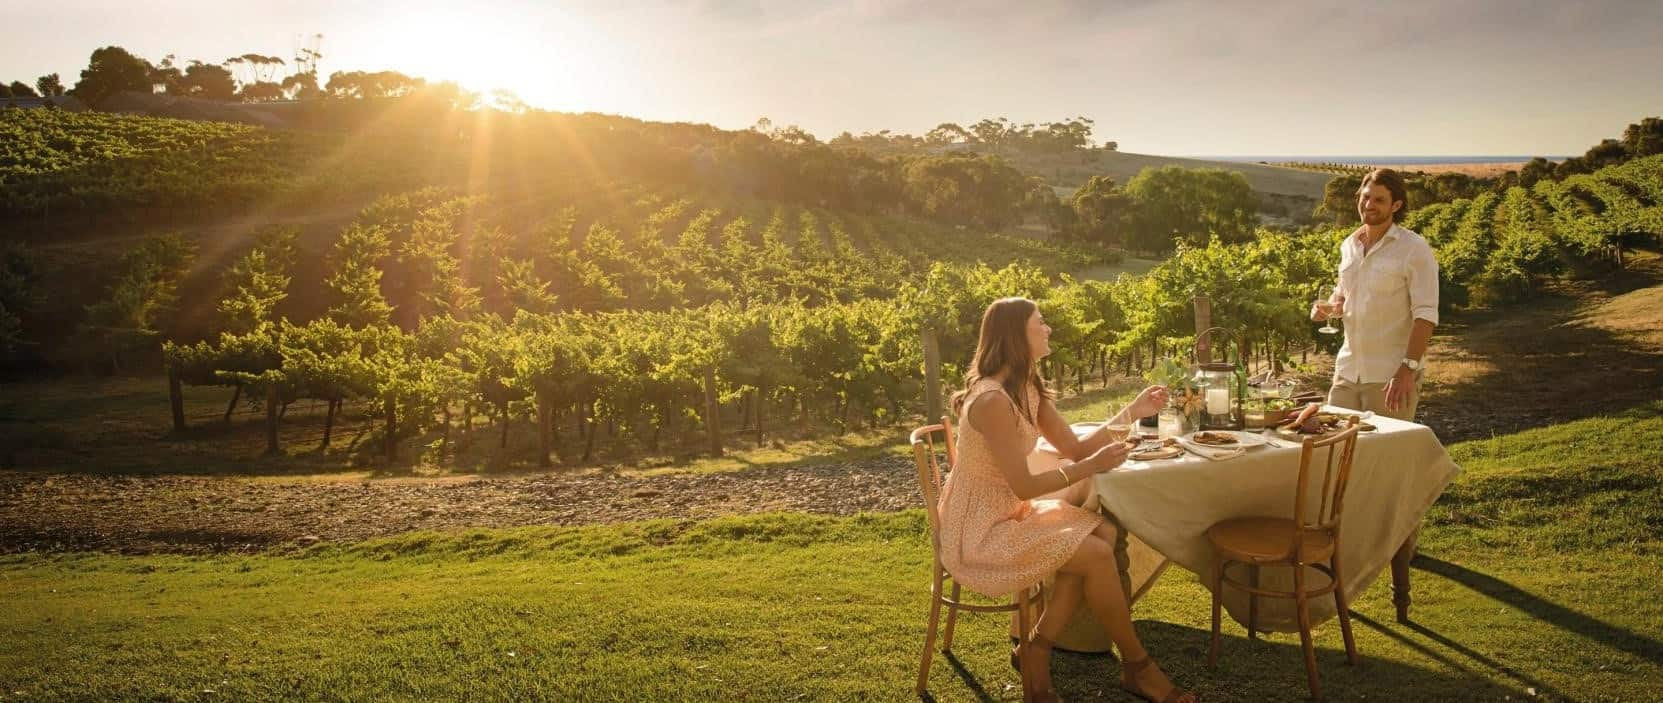 Hunter Valley Wine Country, Sydney, Australia